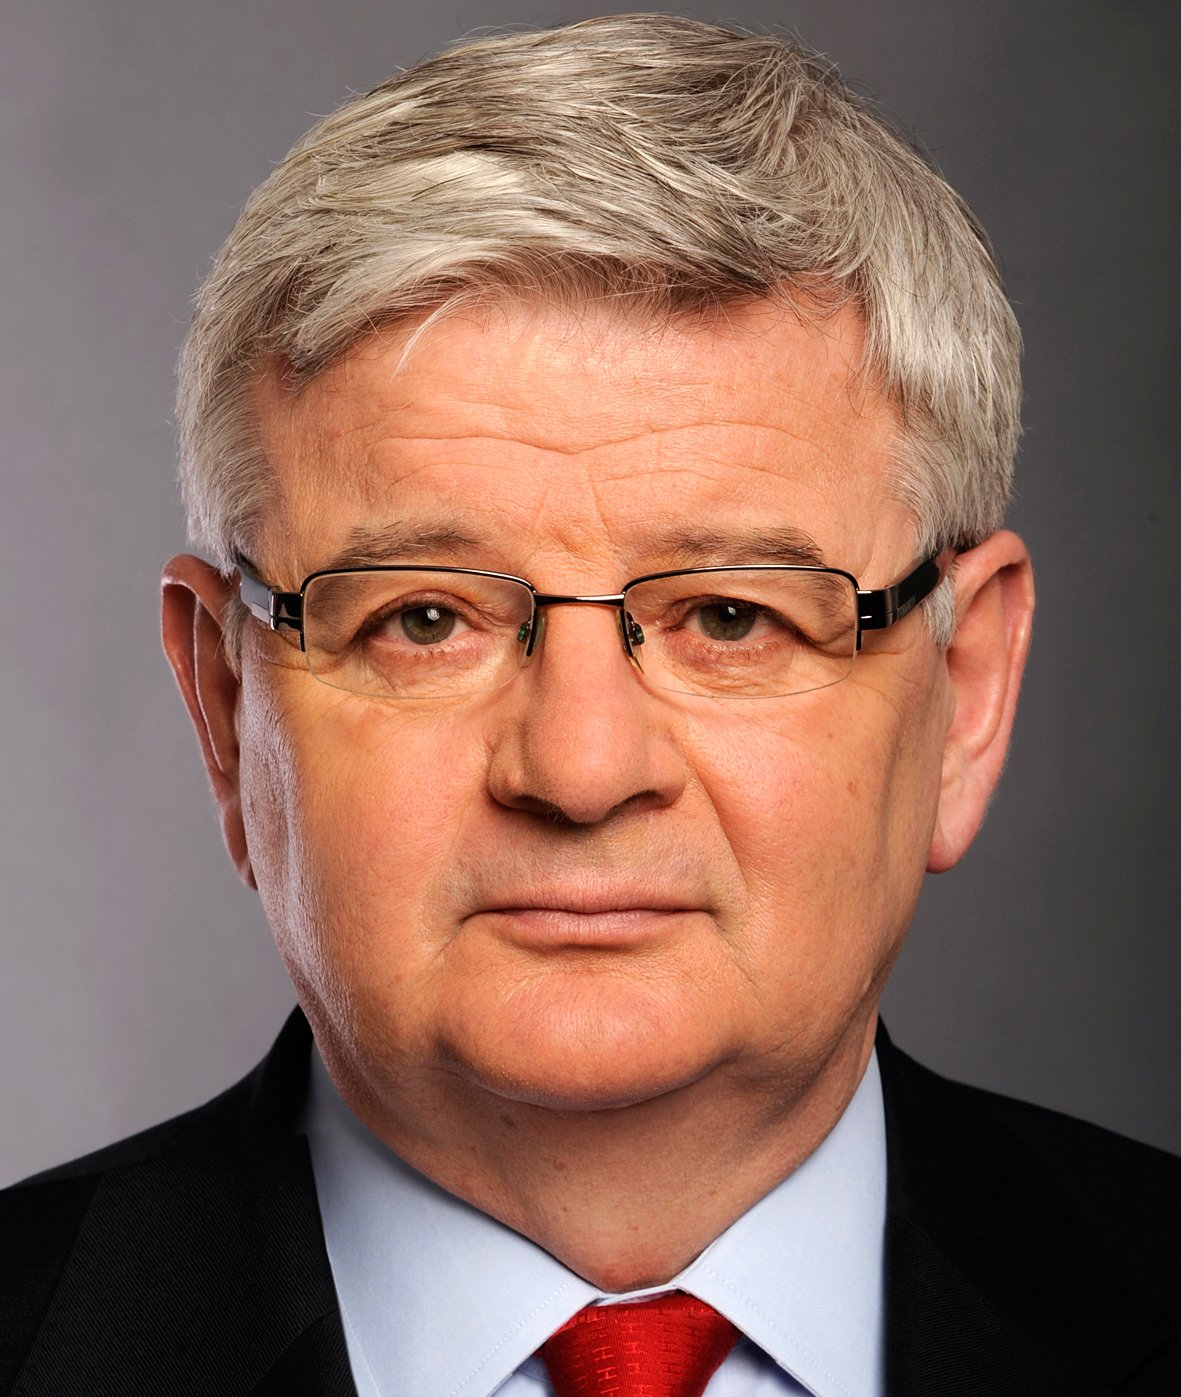 Joschka Fischer speaker Germany politics and economics